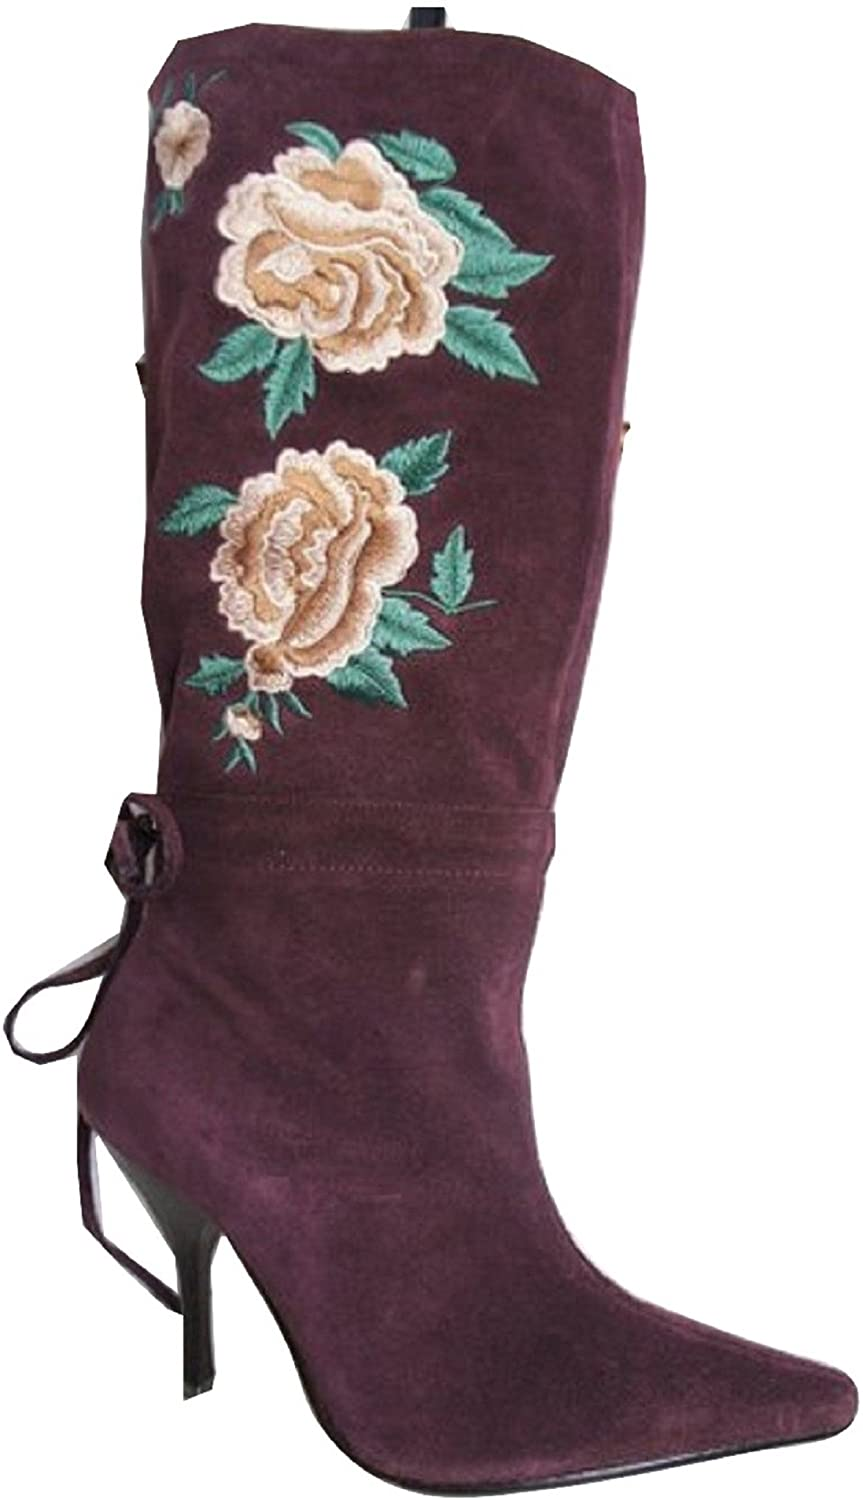 "FAITH""""ROSE"" Real Suede Leather Embroidered Mid Calf Boots"